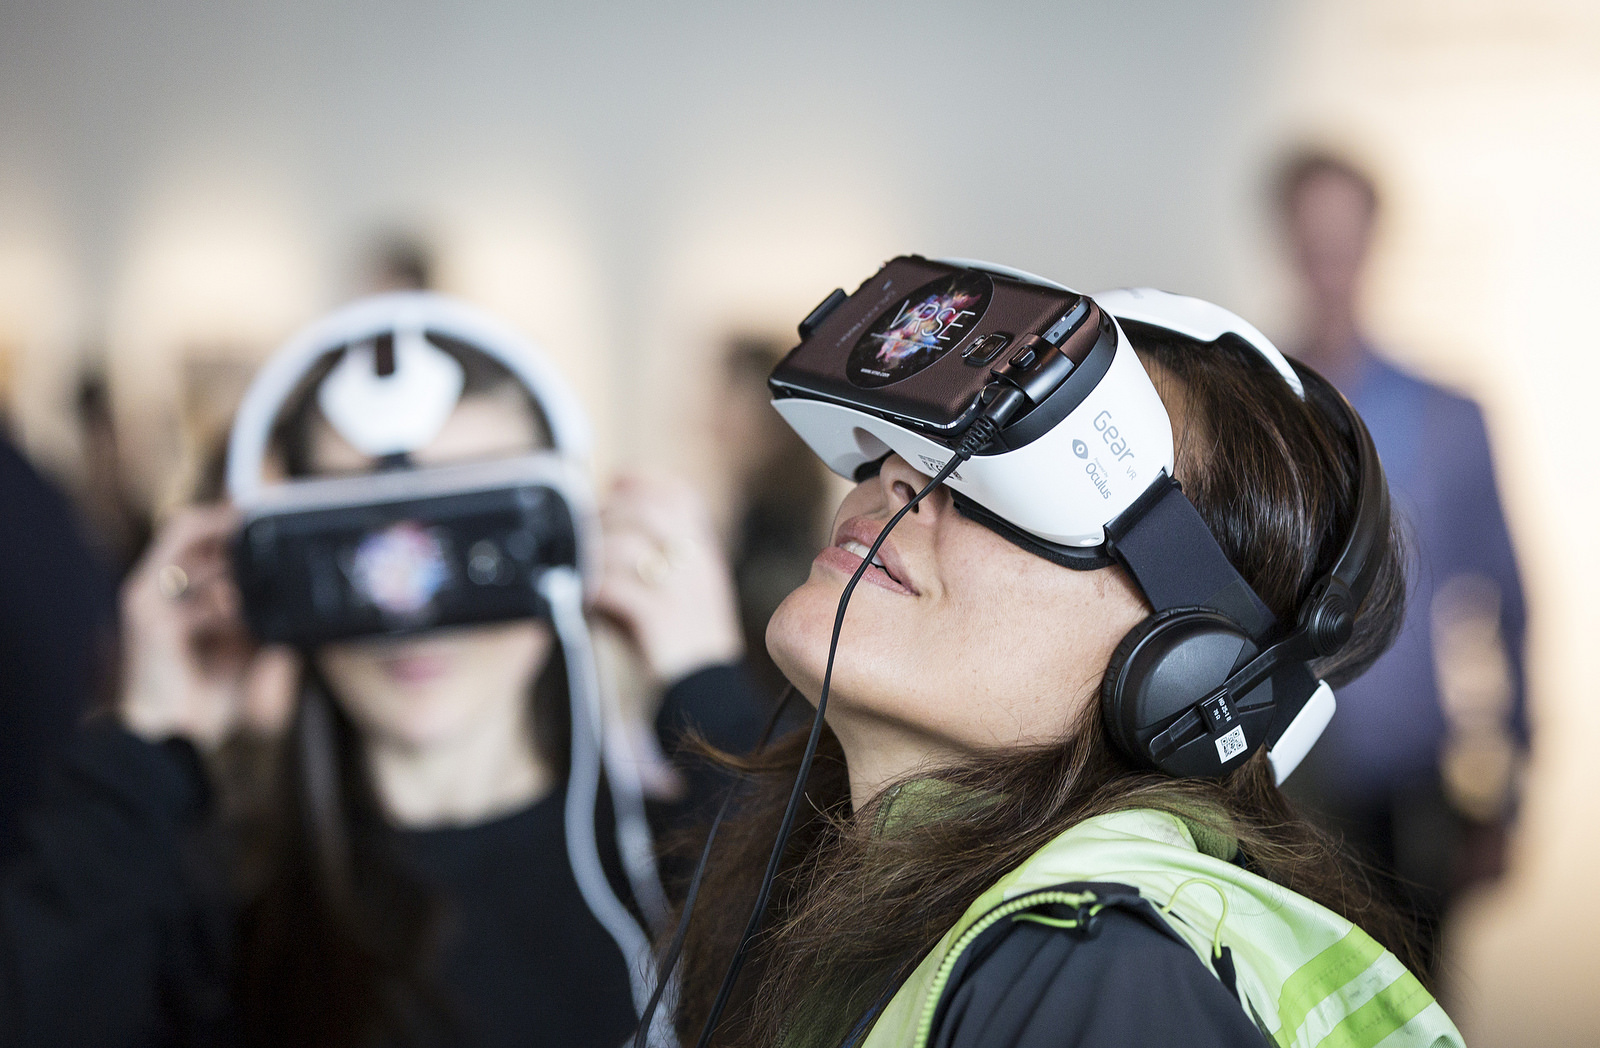 Two people wearing virtual reality headsets